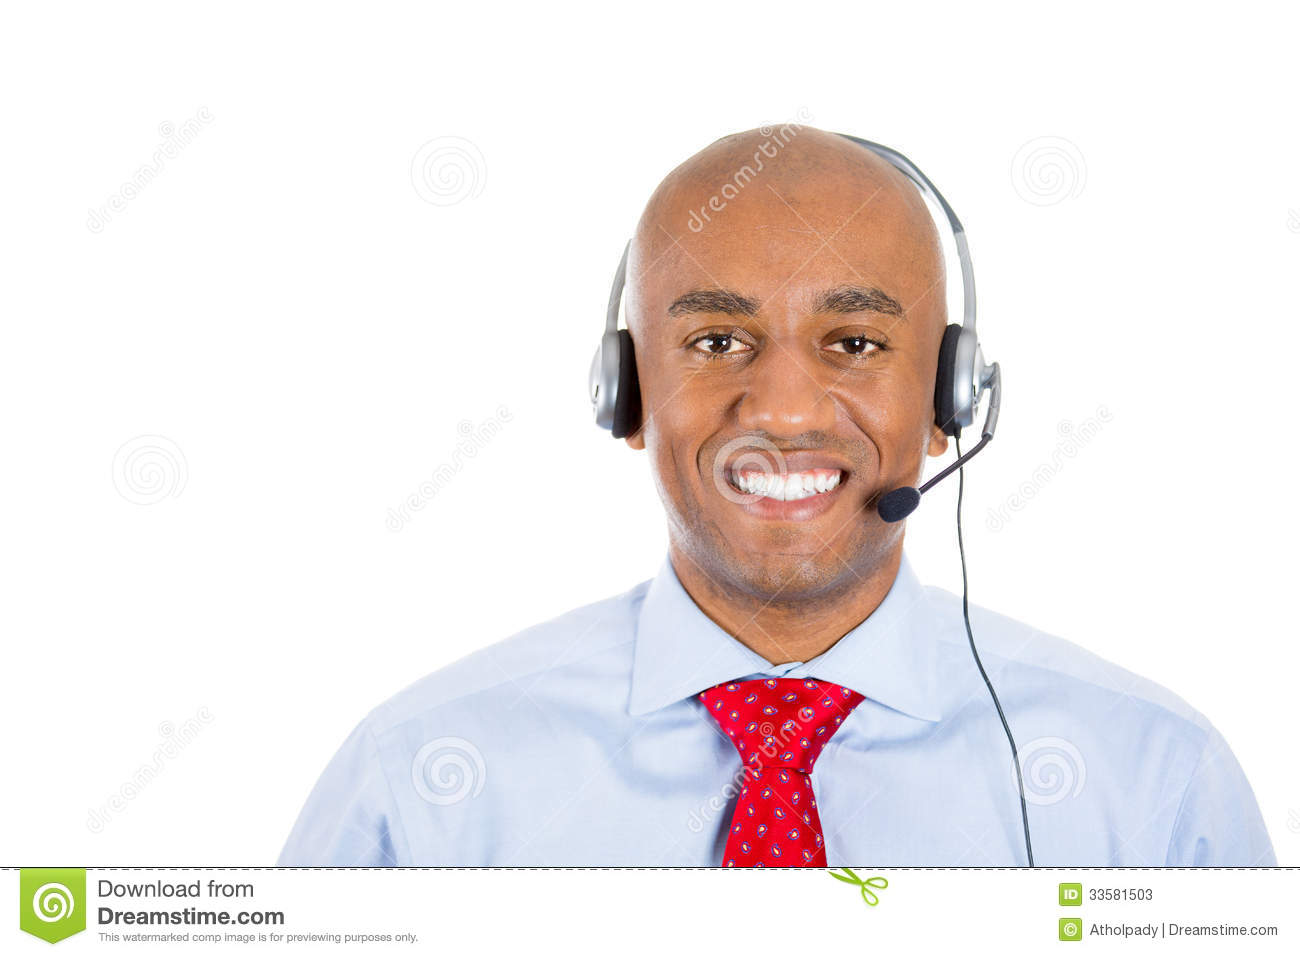 call match com customer support